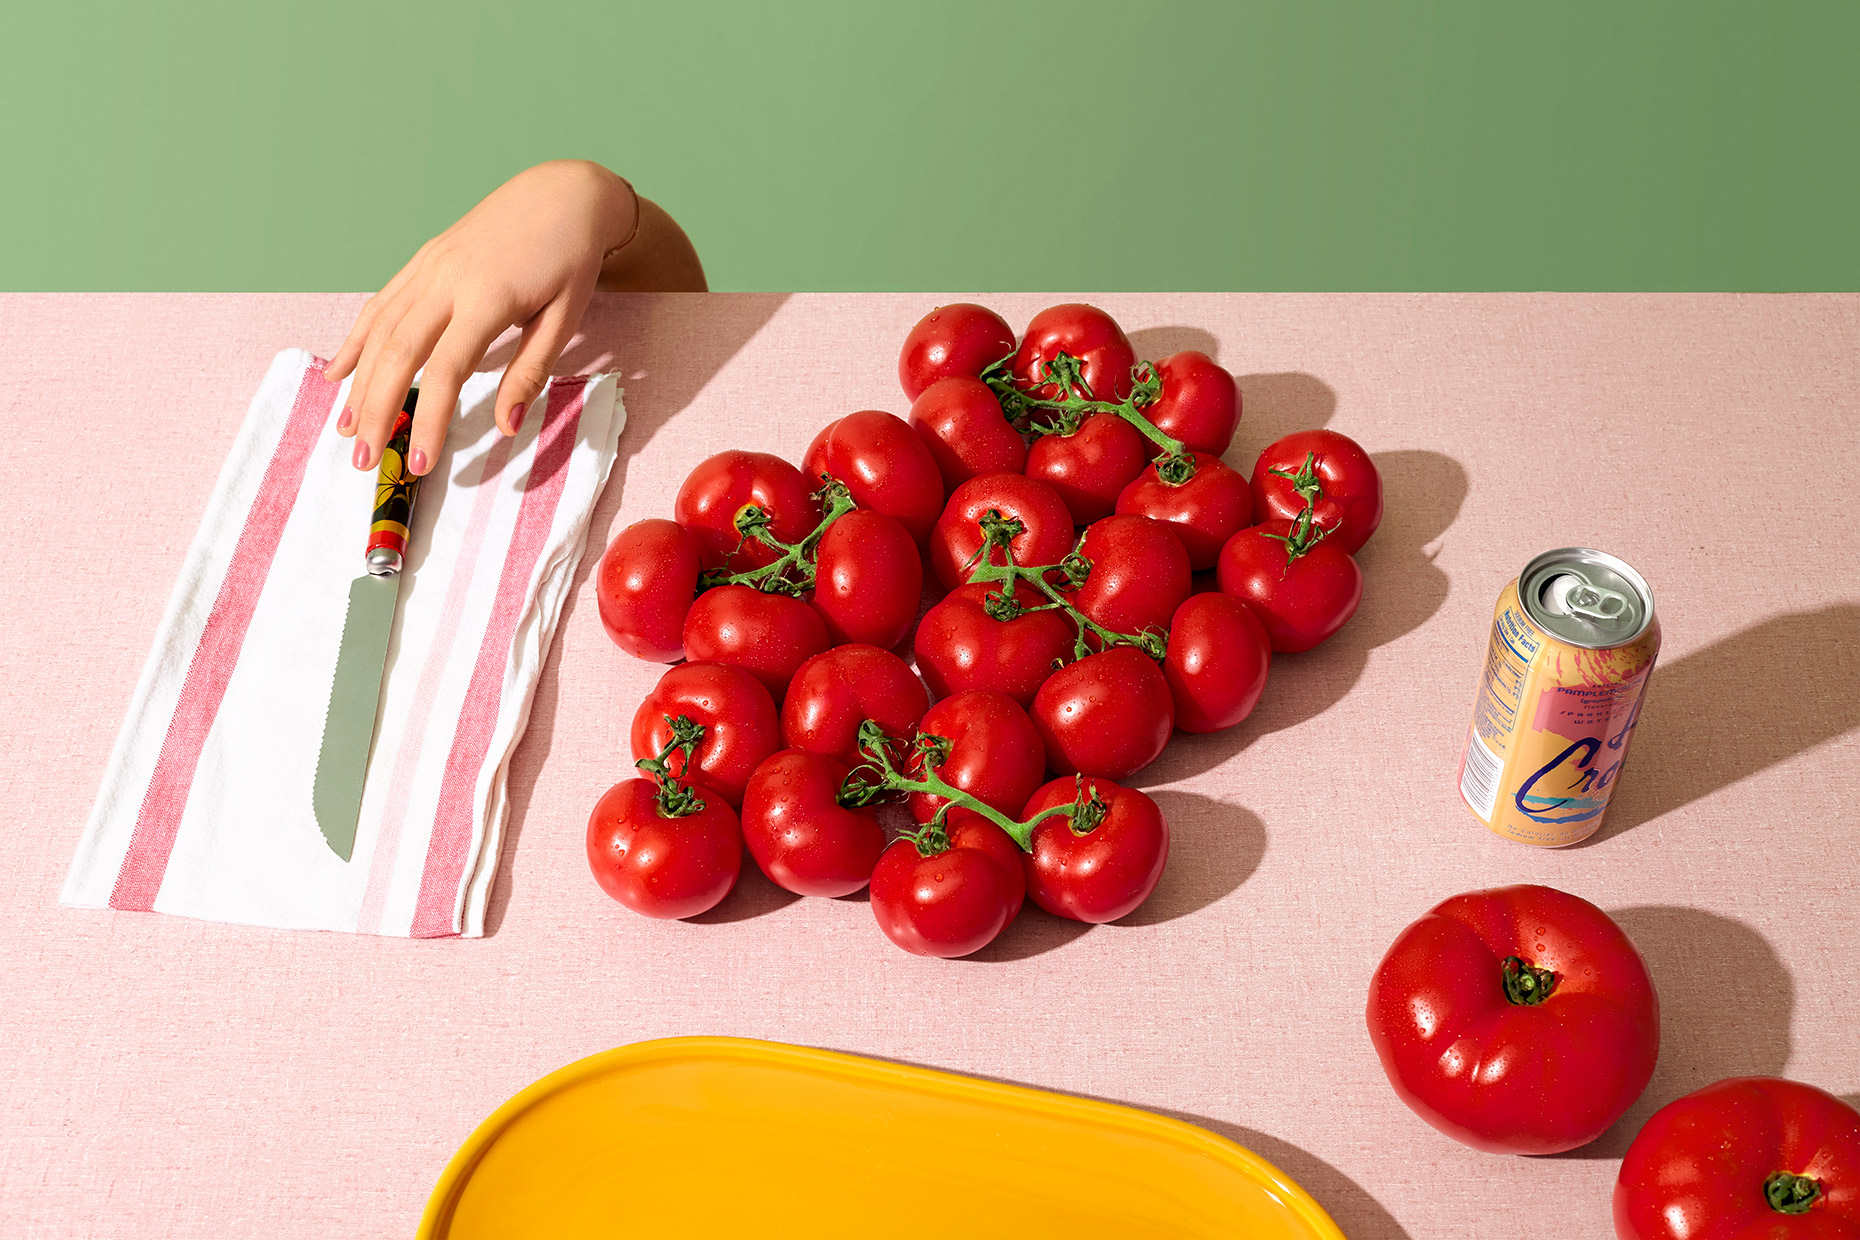 AD_Zine_Tomatoes_70318_0606_Final_Web